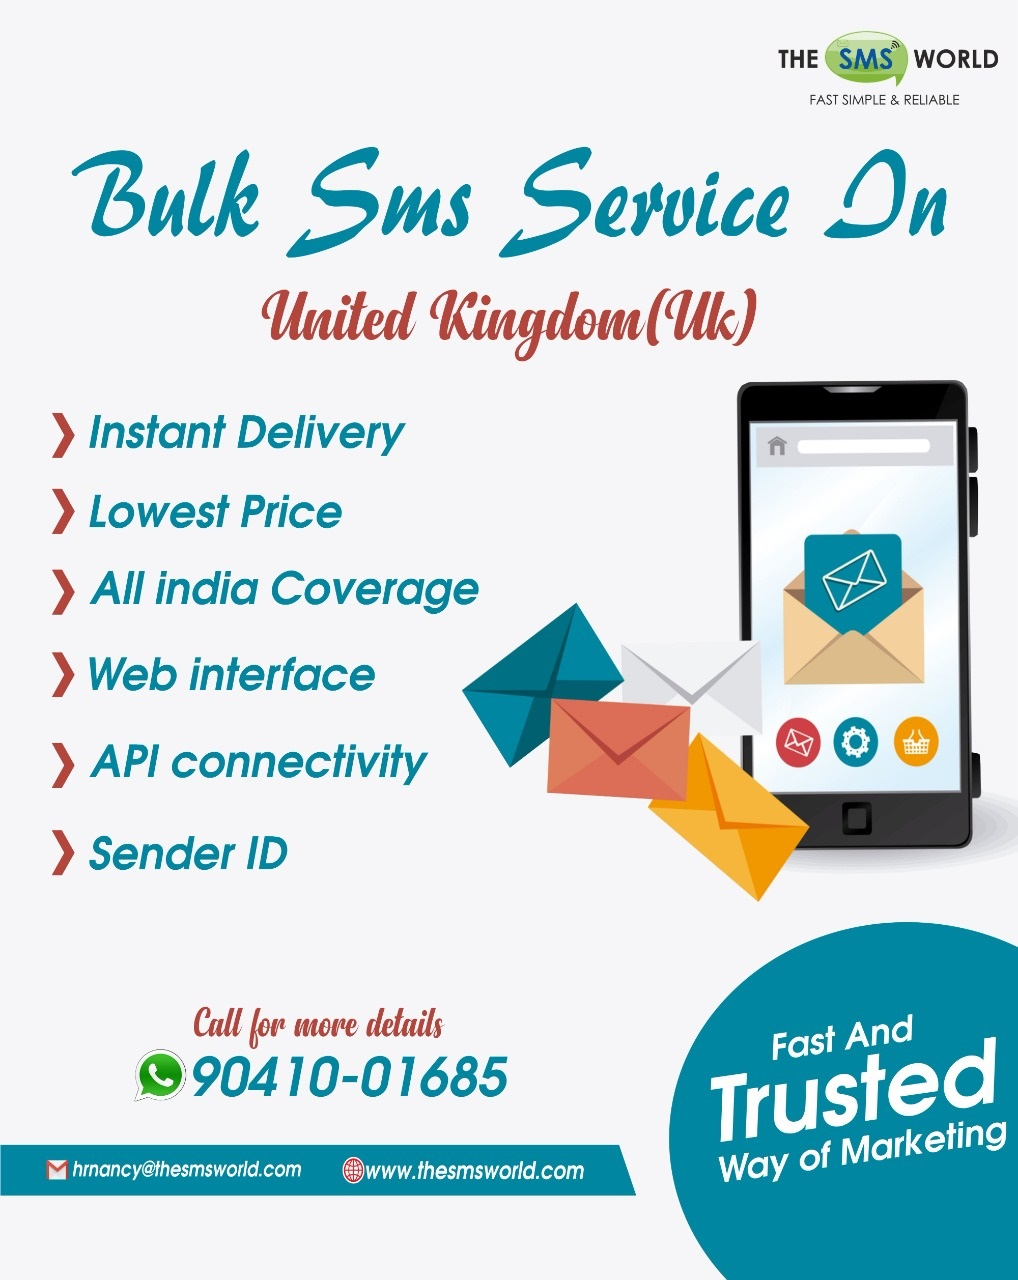 Bulk SMS Service in United Kingdom London